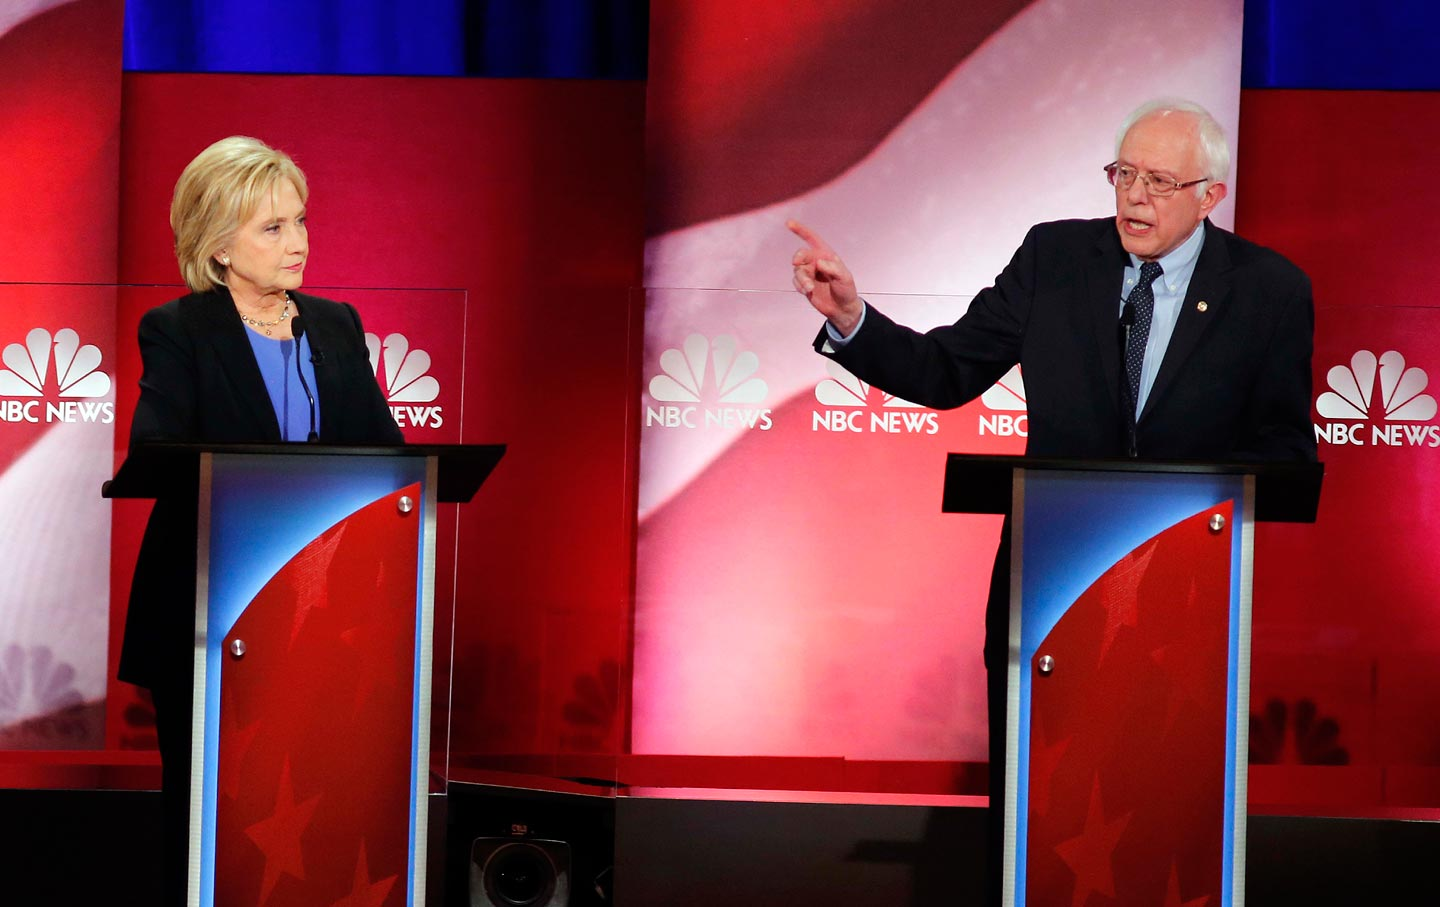 Hillary Clinton Losing Her National Lead Over Bernie Sanders, Poll Shows